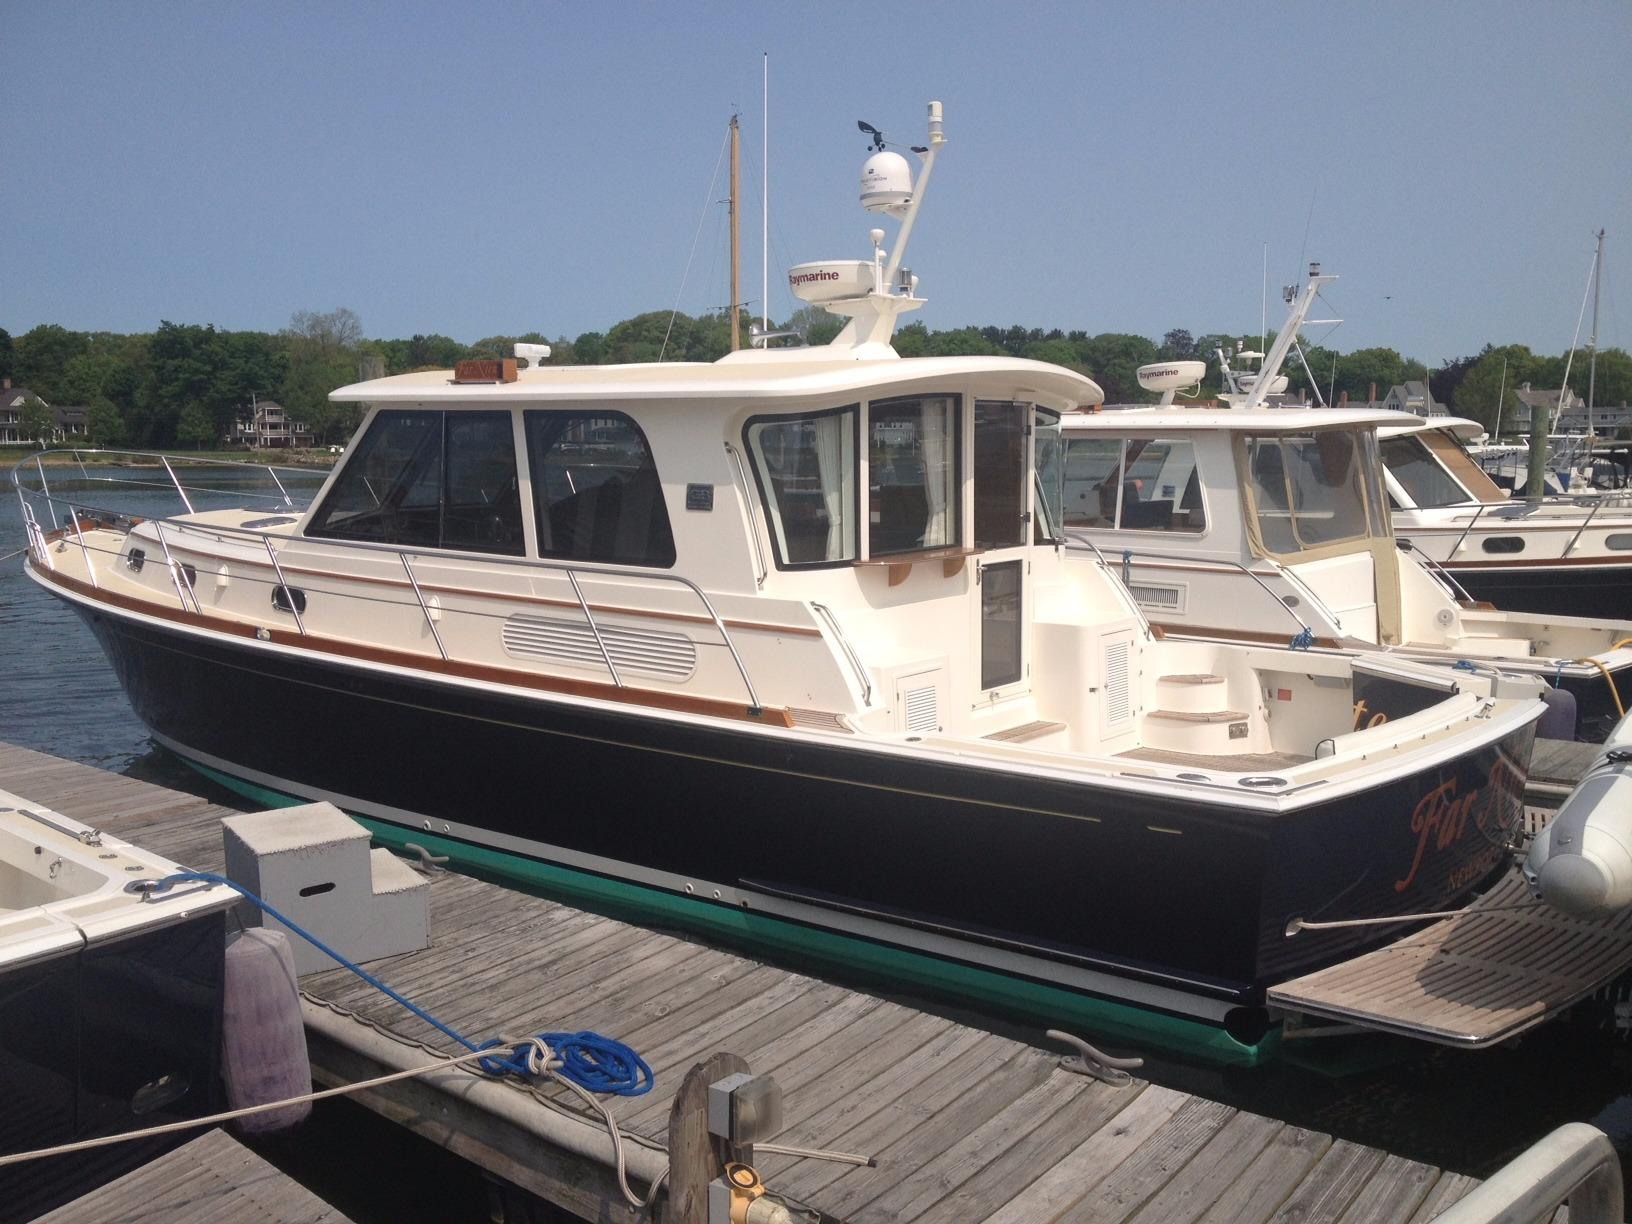 Used grand banks yachts for sale from 35 to 45 feet for Grand banks motor yachts for sale